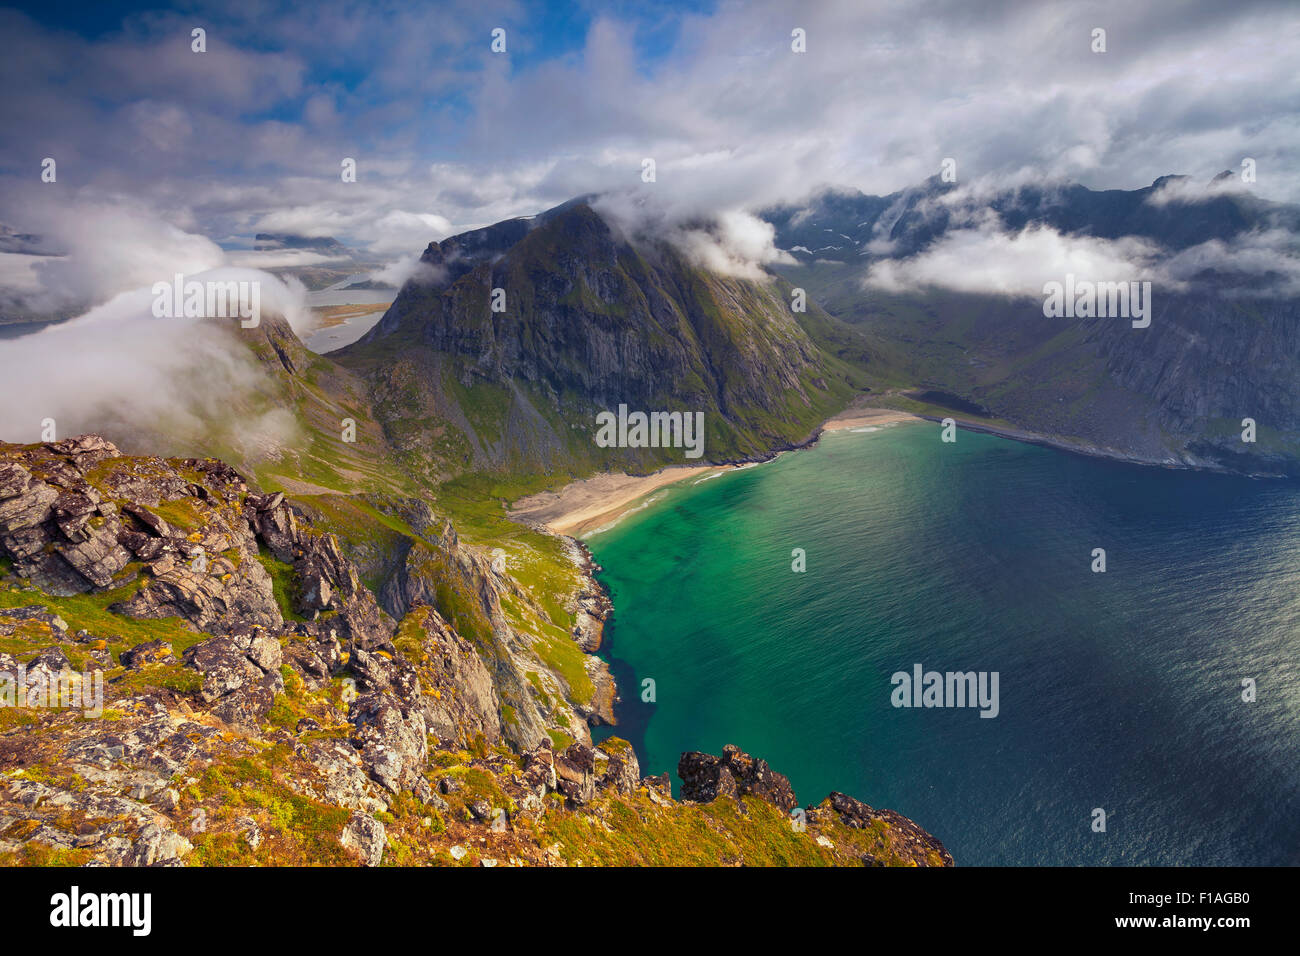 Image of Kvalvika Beach taken from Mt. Ryten, located at Lofoten Islands. - Stock Image